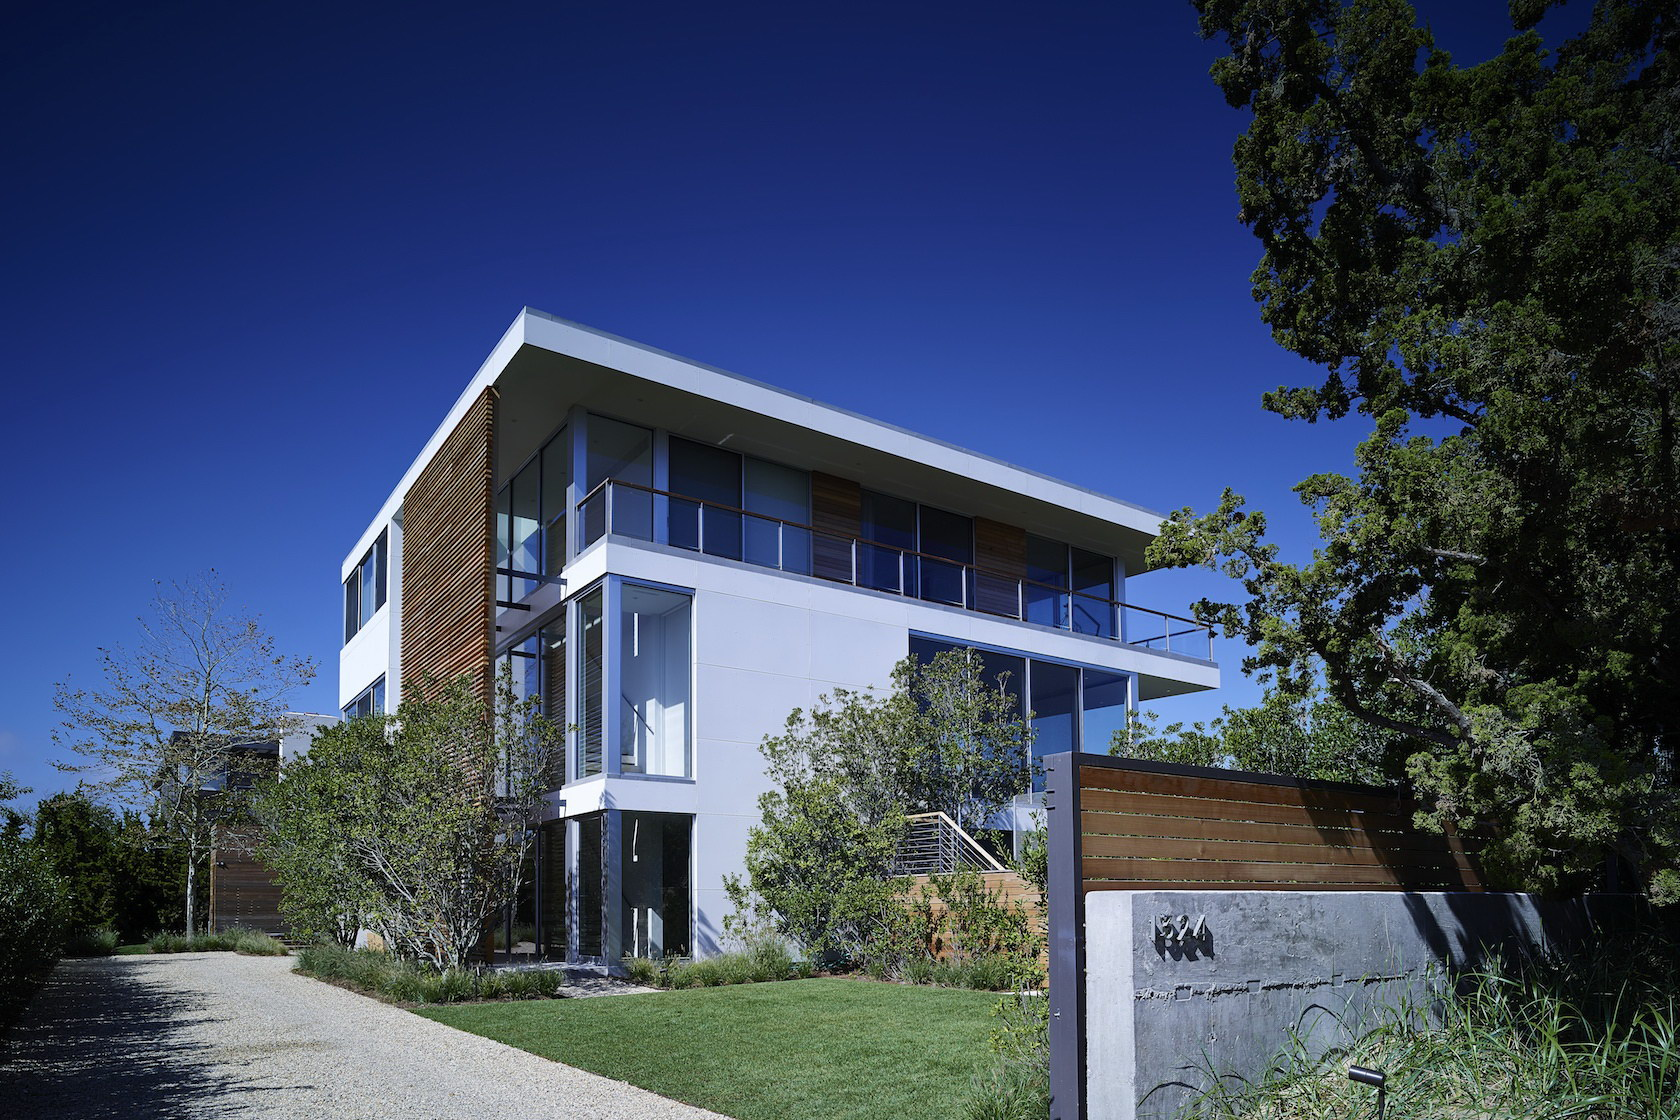 Home in Mecox Bay by Stelle Lomont Rouhani Architects